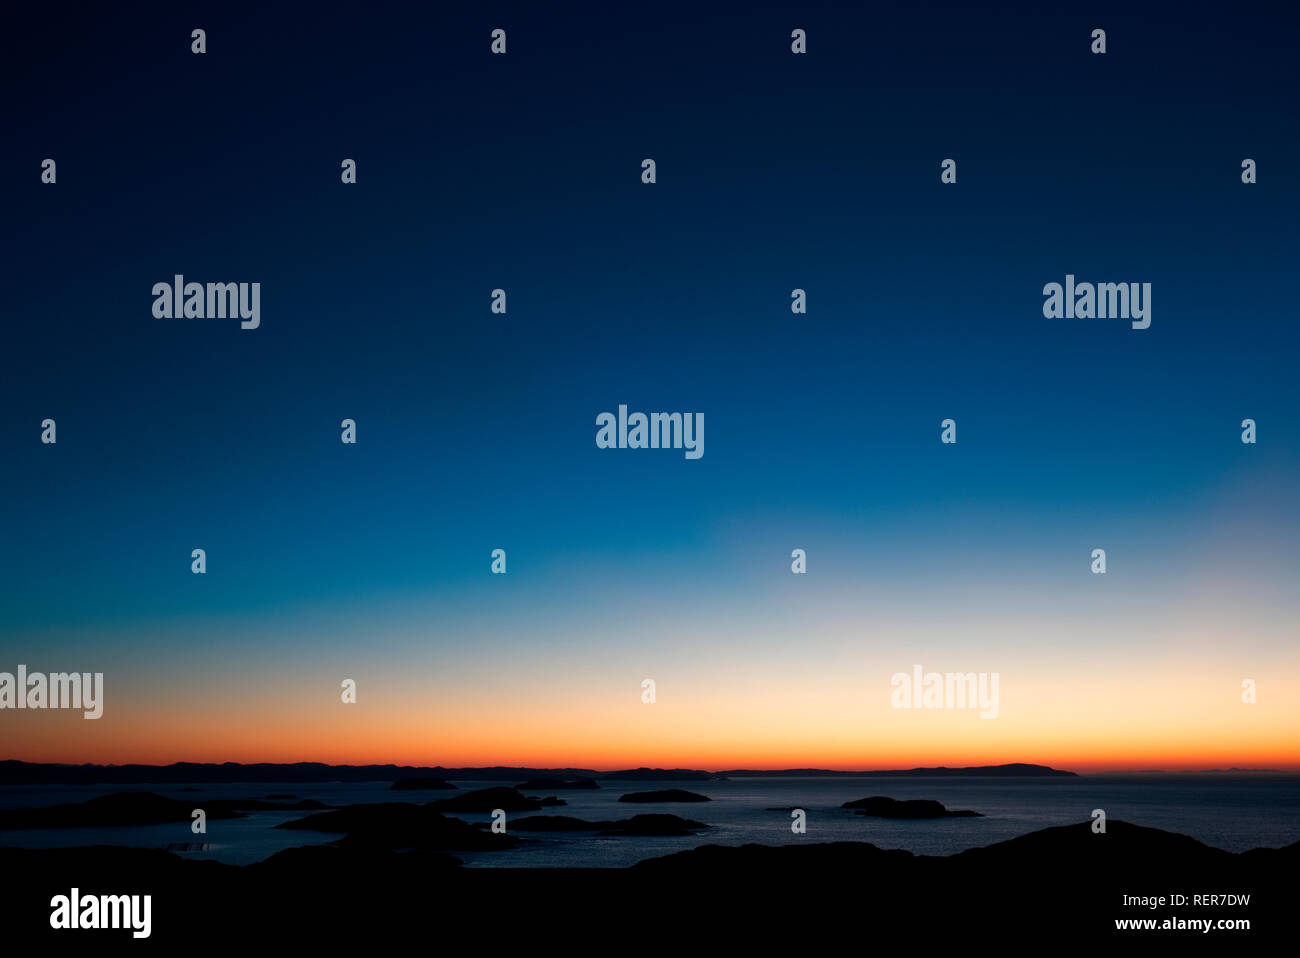 Dusk with a clear sky at Badcall Bay, Sutherland - Stock Image